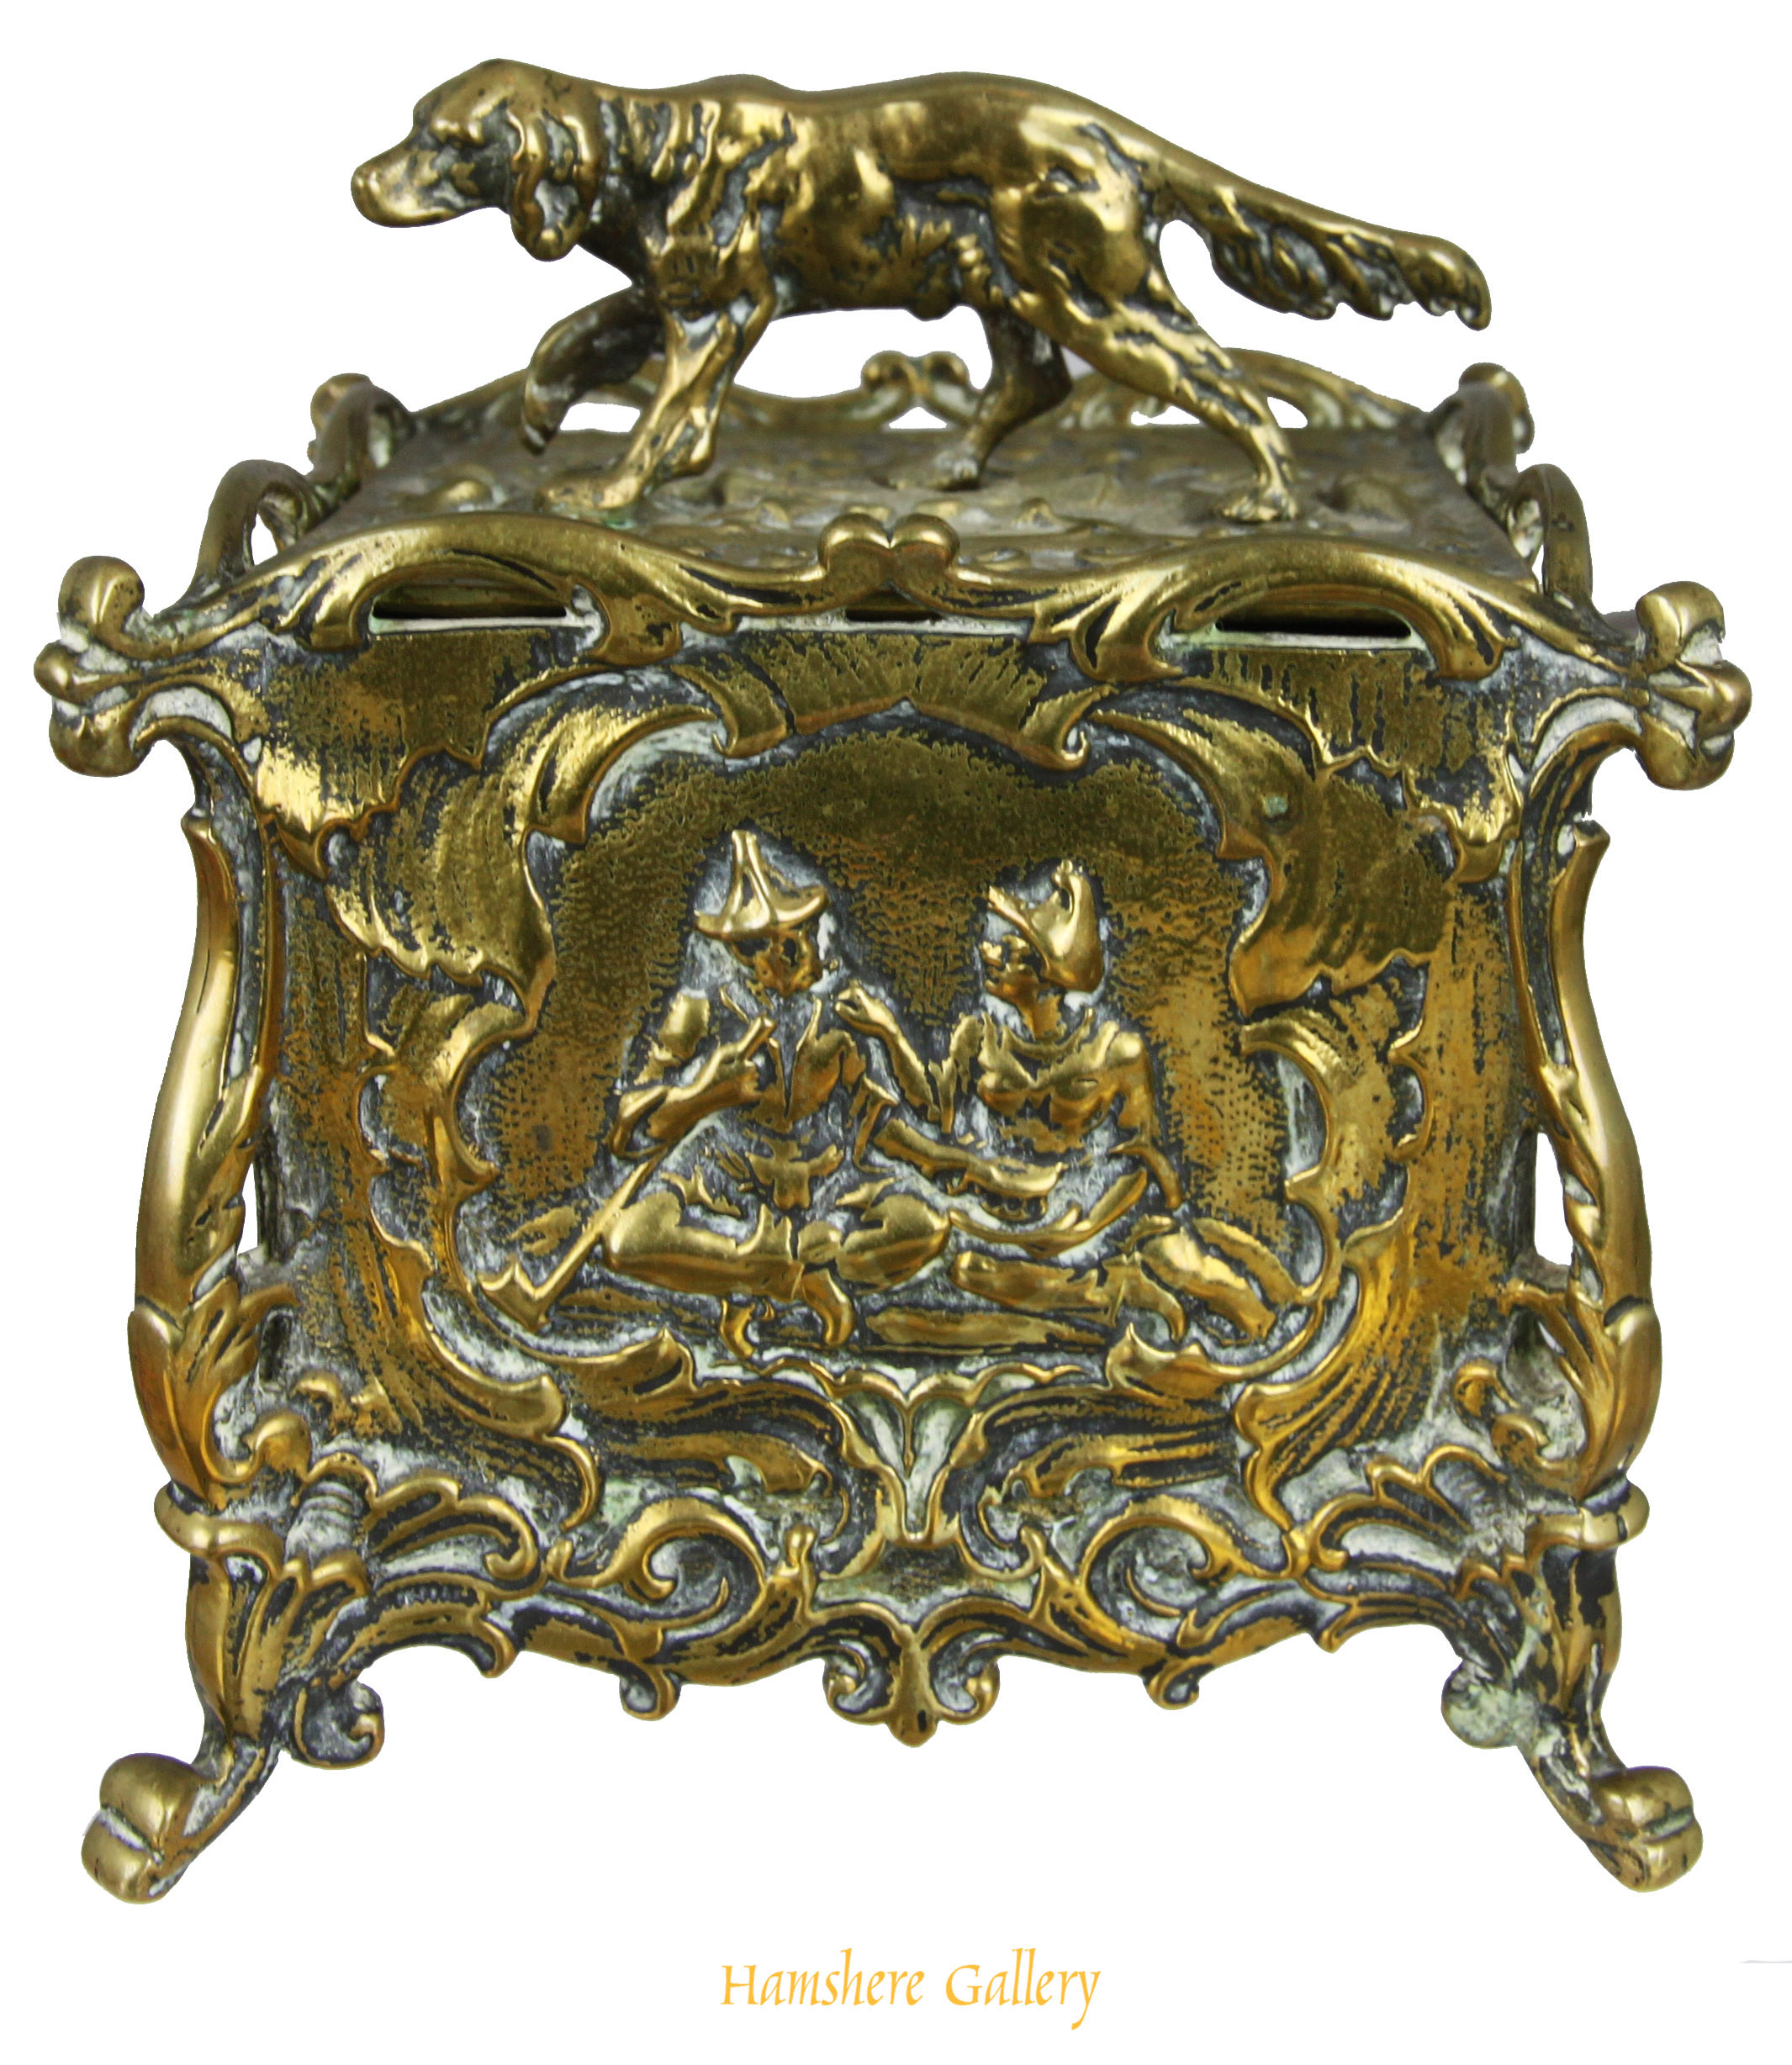 Click for larger image:    19th century Rococo bronze tea caddy / canister with Setter finial - <br />  <br /> 19th century Rococo bronze tea caddy / canister with Setter finial